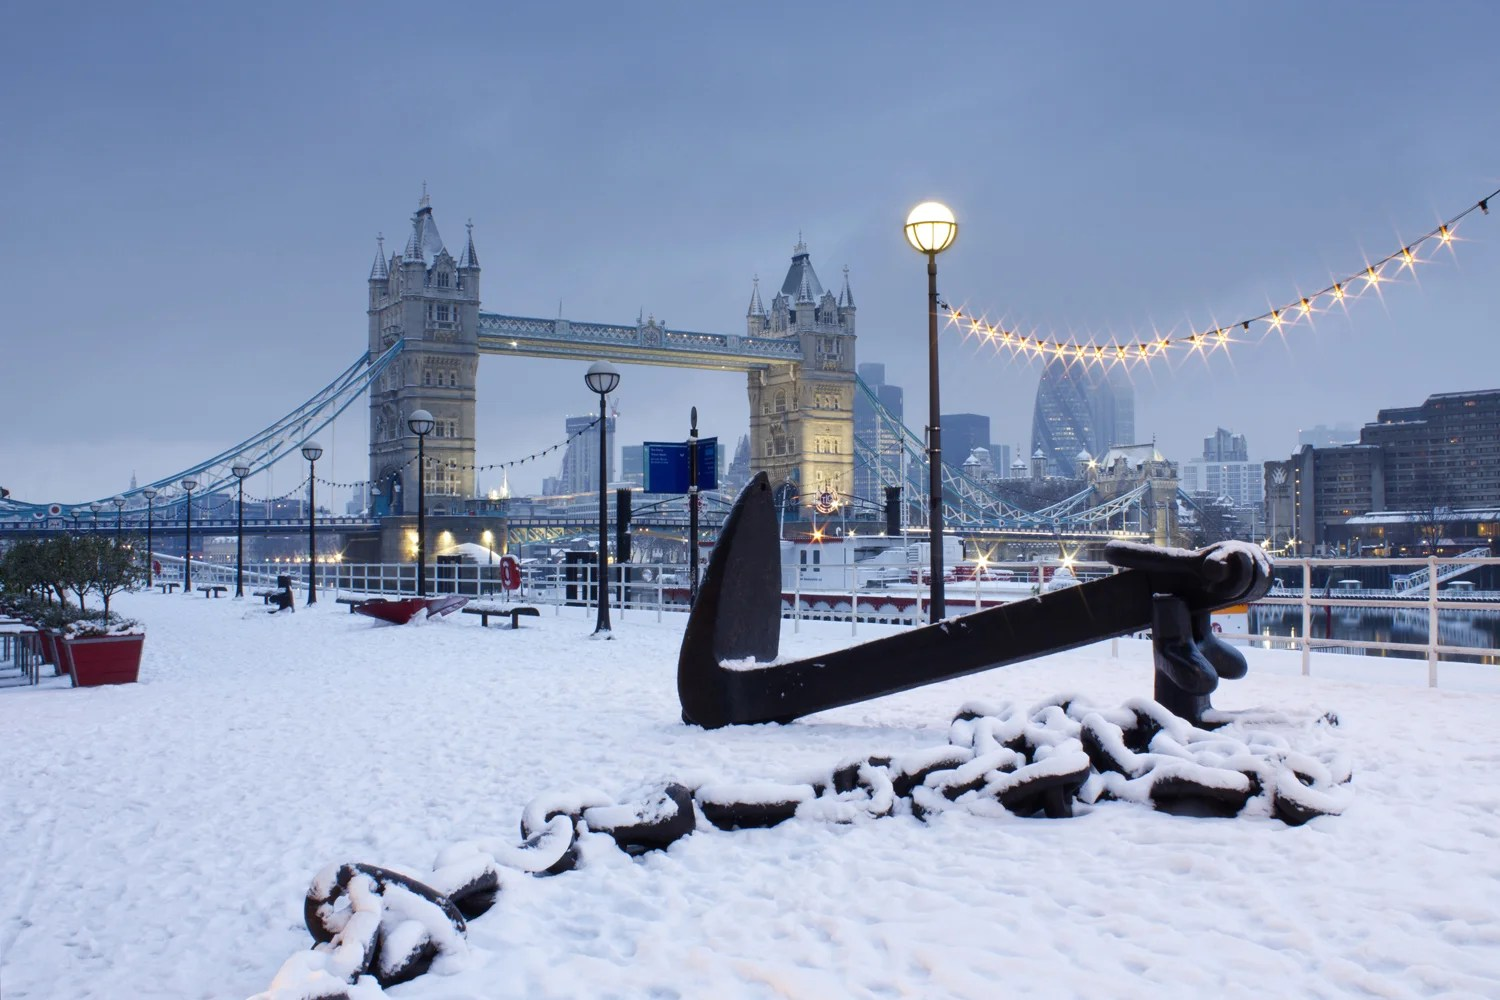 Hd Good Afternoon Wallpaper London Weather Snow And Sleet Expected To Hit The Capital